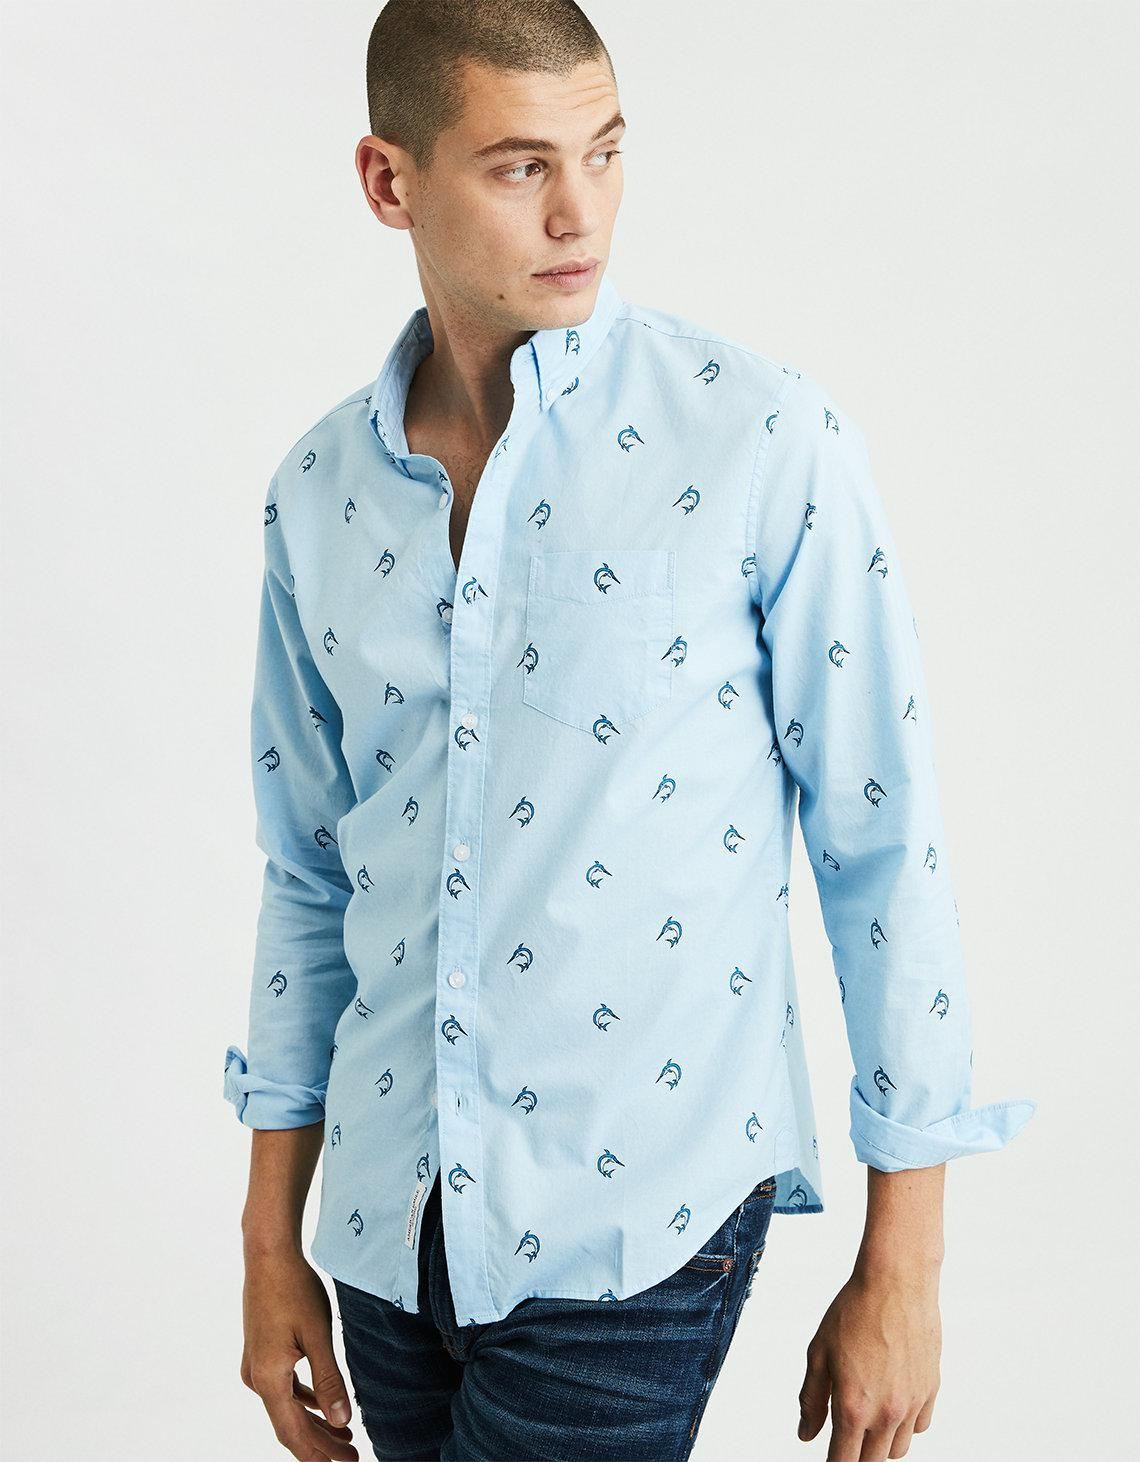 3f2c604a American Eagle Button Down Dress Shirts – EDGE Engineering and ...